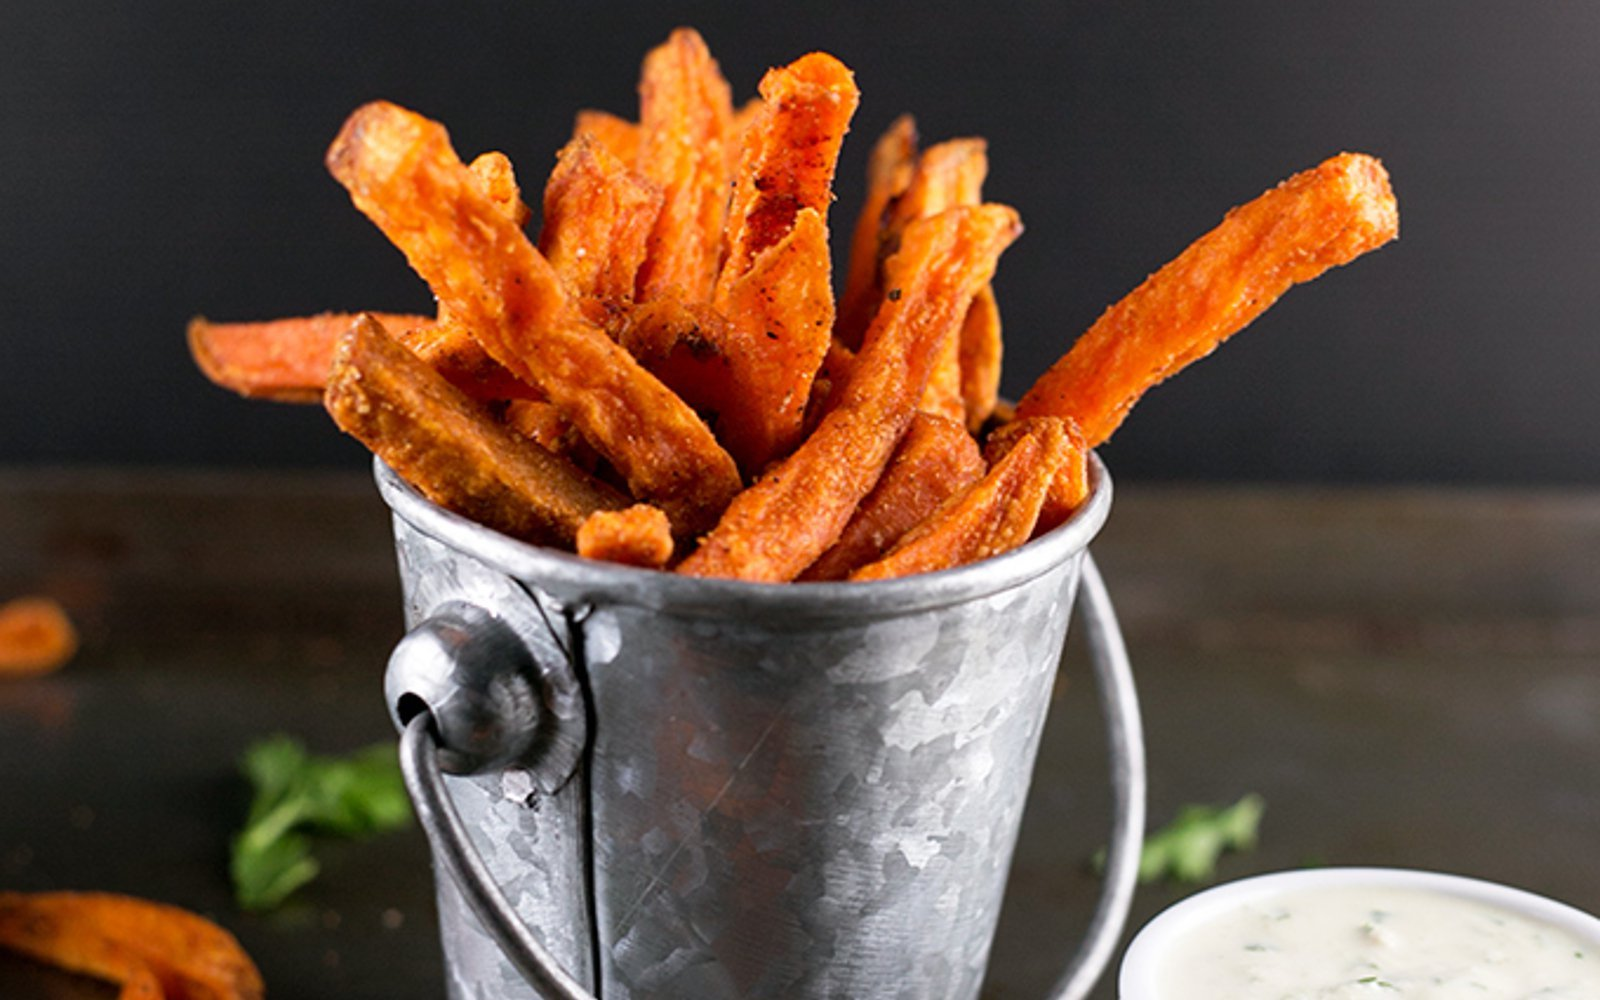 Sweet potato fries high in manganese